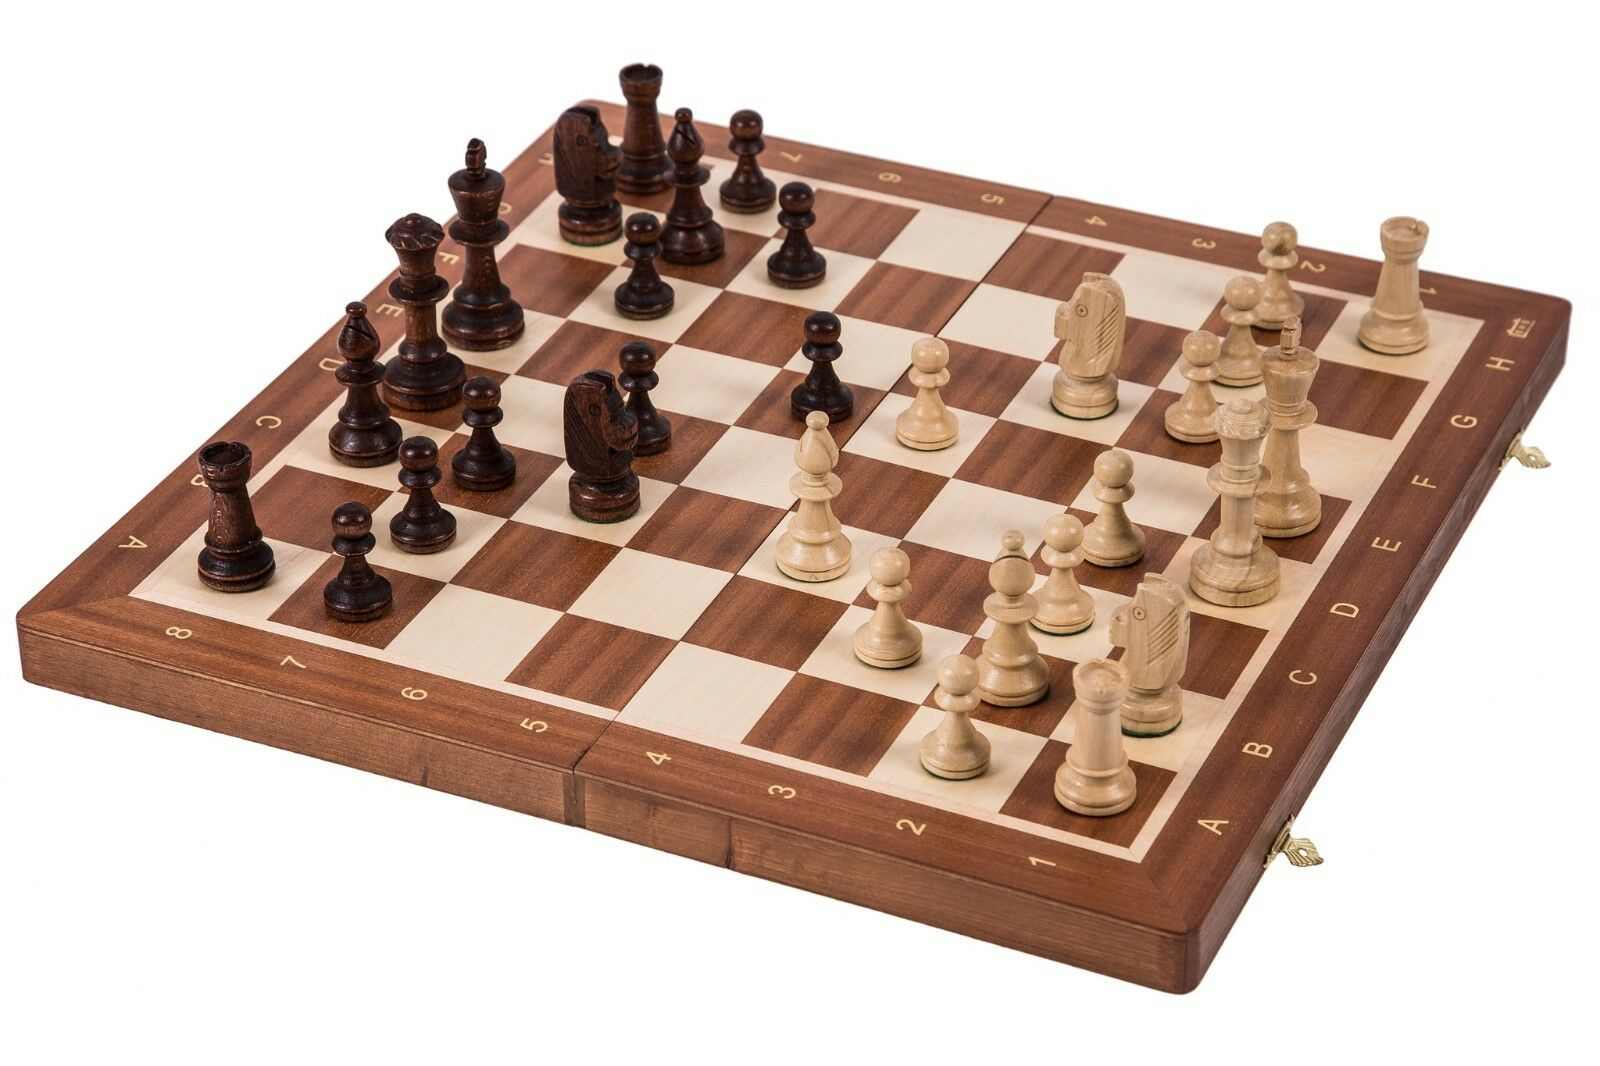 SQUARE - Wooden Chess Set No. 5 - MAHAGONY - Chessboard & Chess Pieces